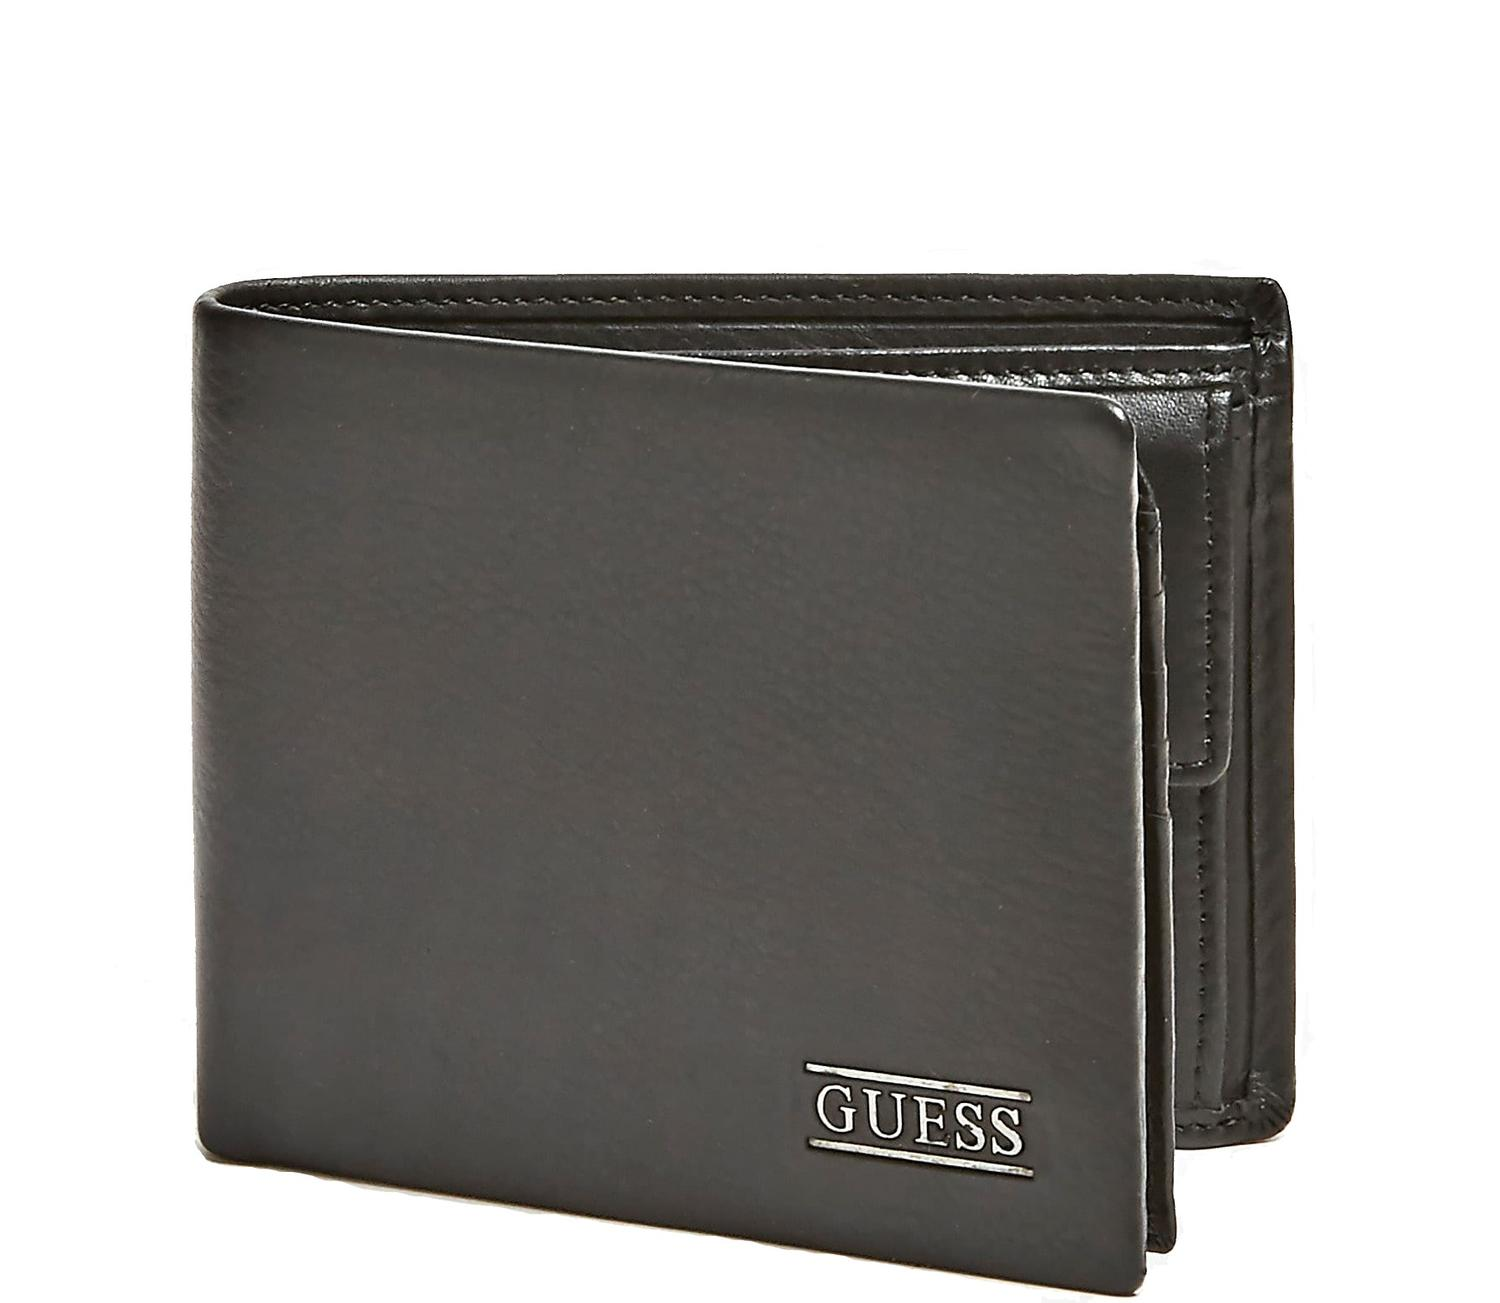 Guess Wallet New Boston Line - Shop Online At Best Prices! 7b6ada2abf